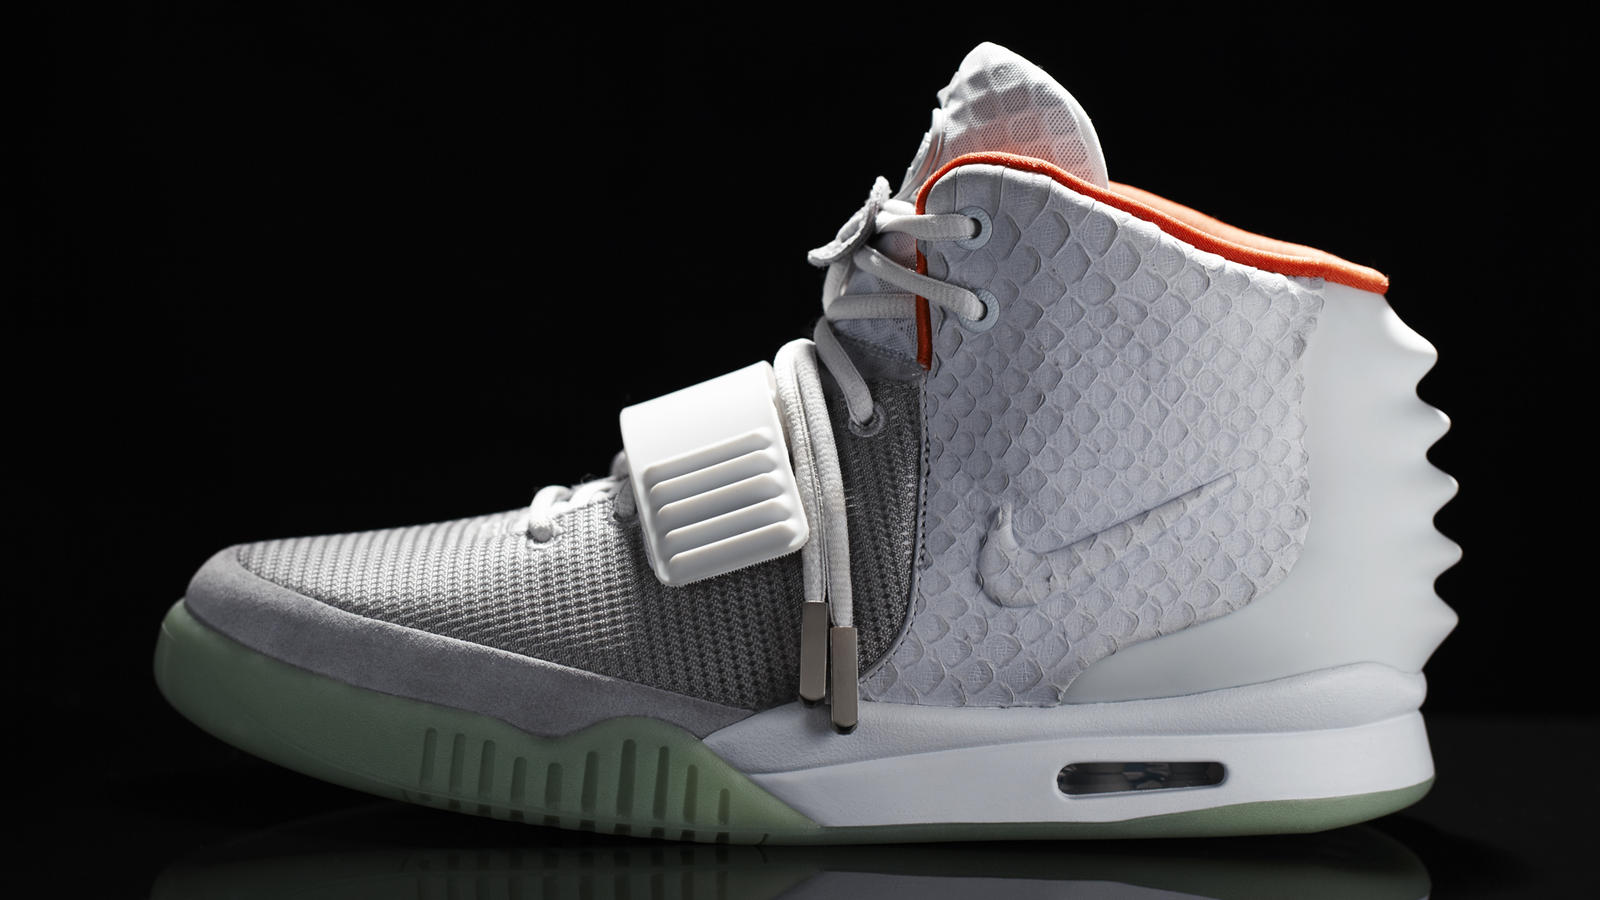 Nike Air Yeezy II Profile. Nike Air Yeezy II Sole.  Nike Air Yeezy II Tongue. Nike Air Yeezy II Pair.  Nike Air Yeezy II Profile. Nike Air Yeezy II Sketch 184e677946